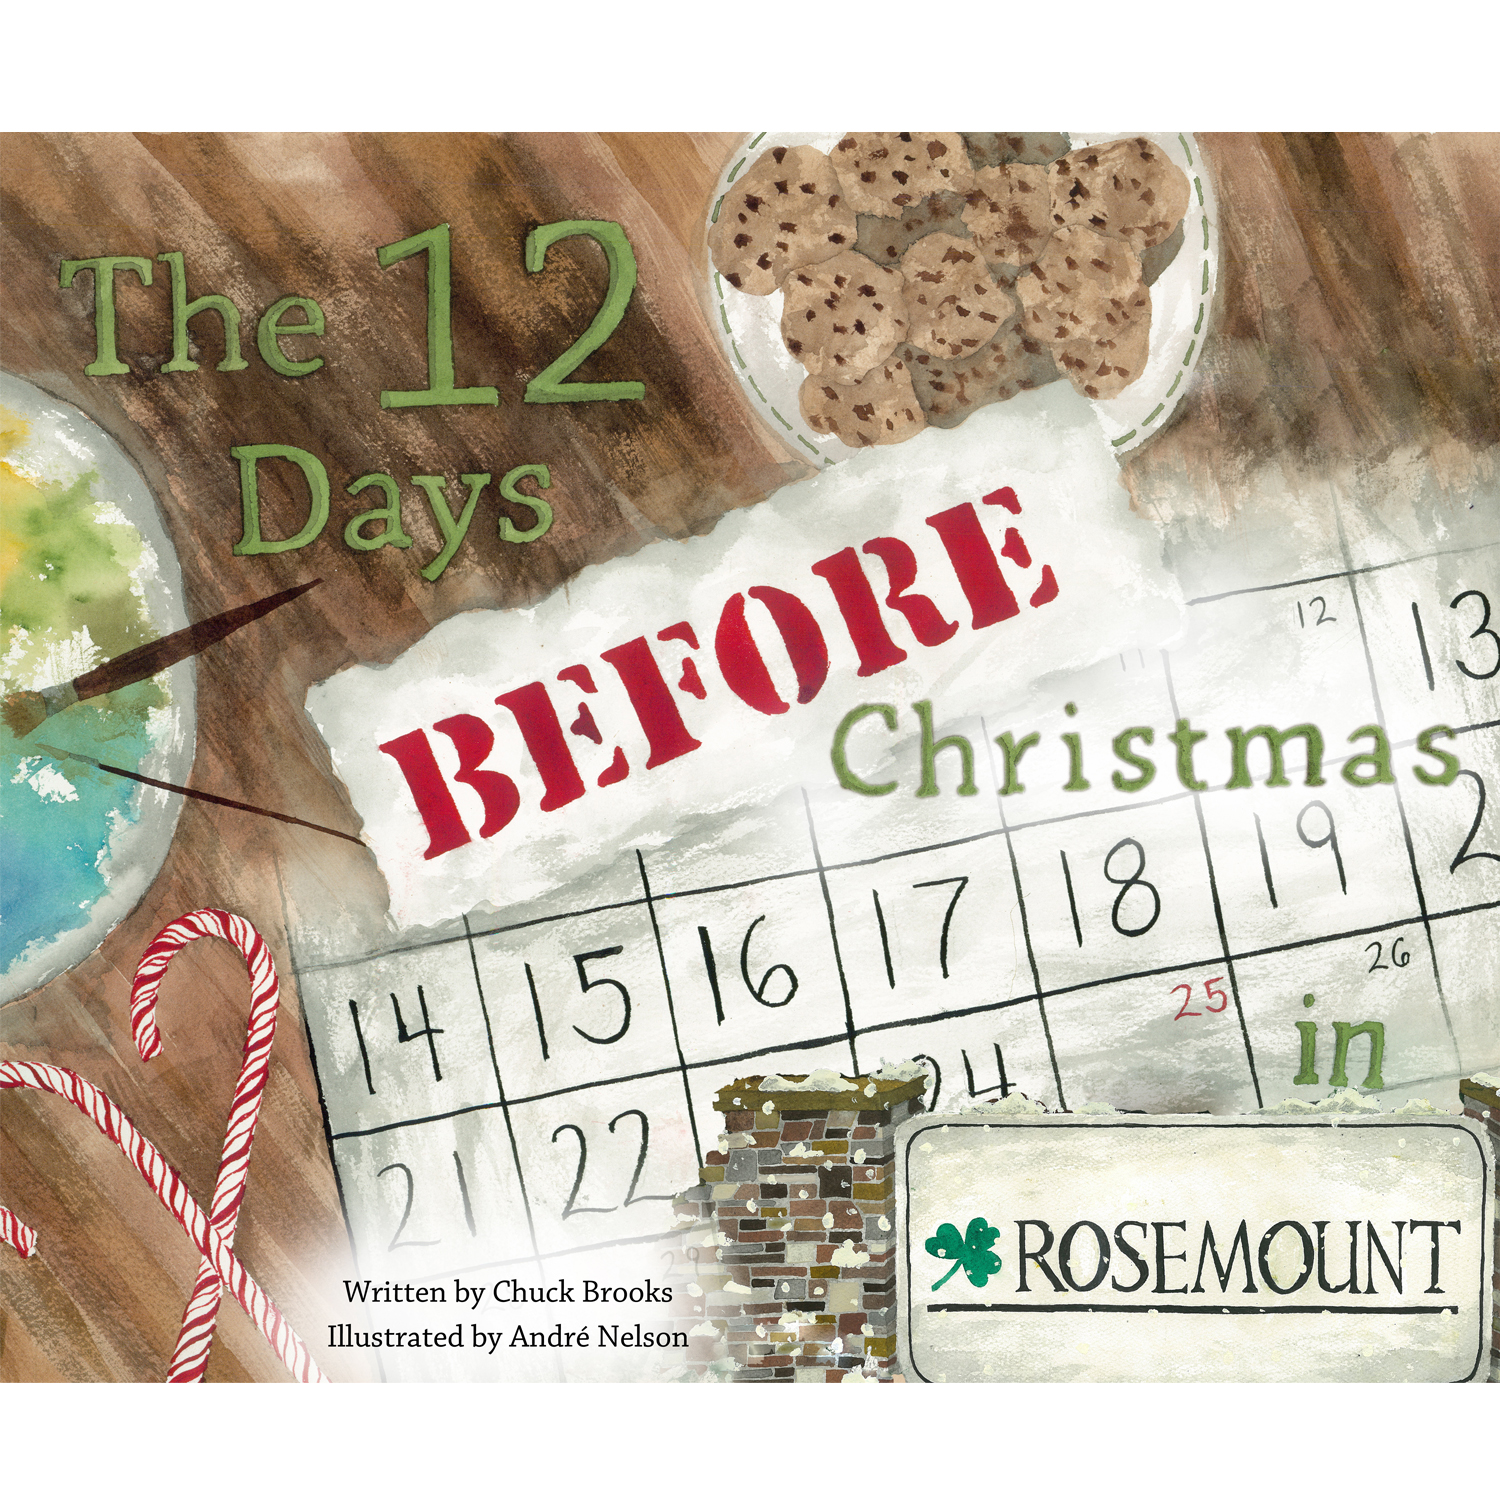 The 12 Days BEFORE Christmas in Rosemount